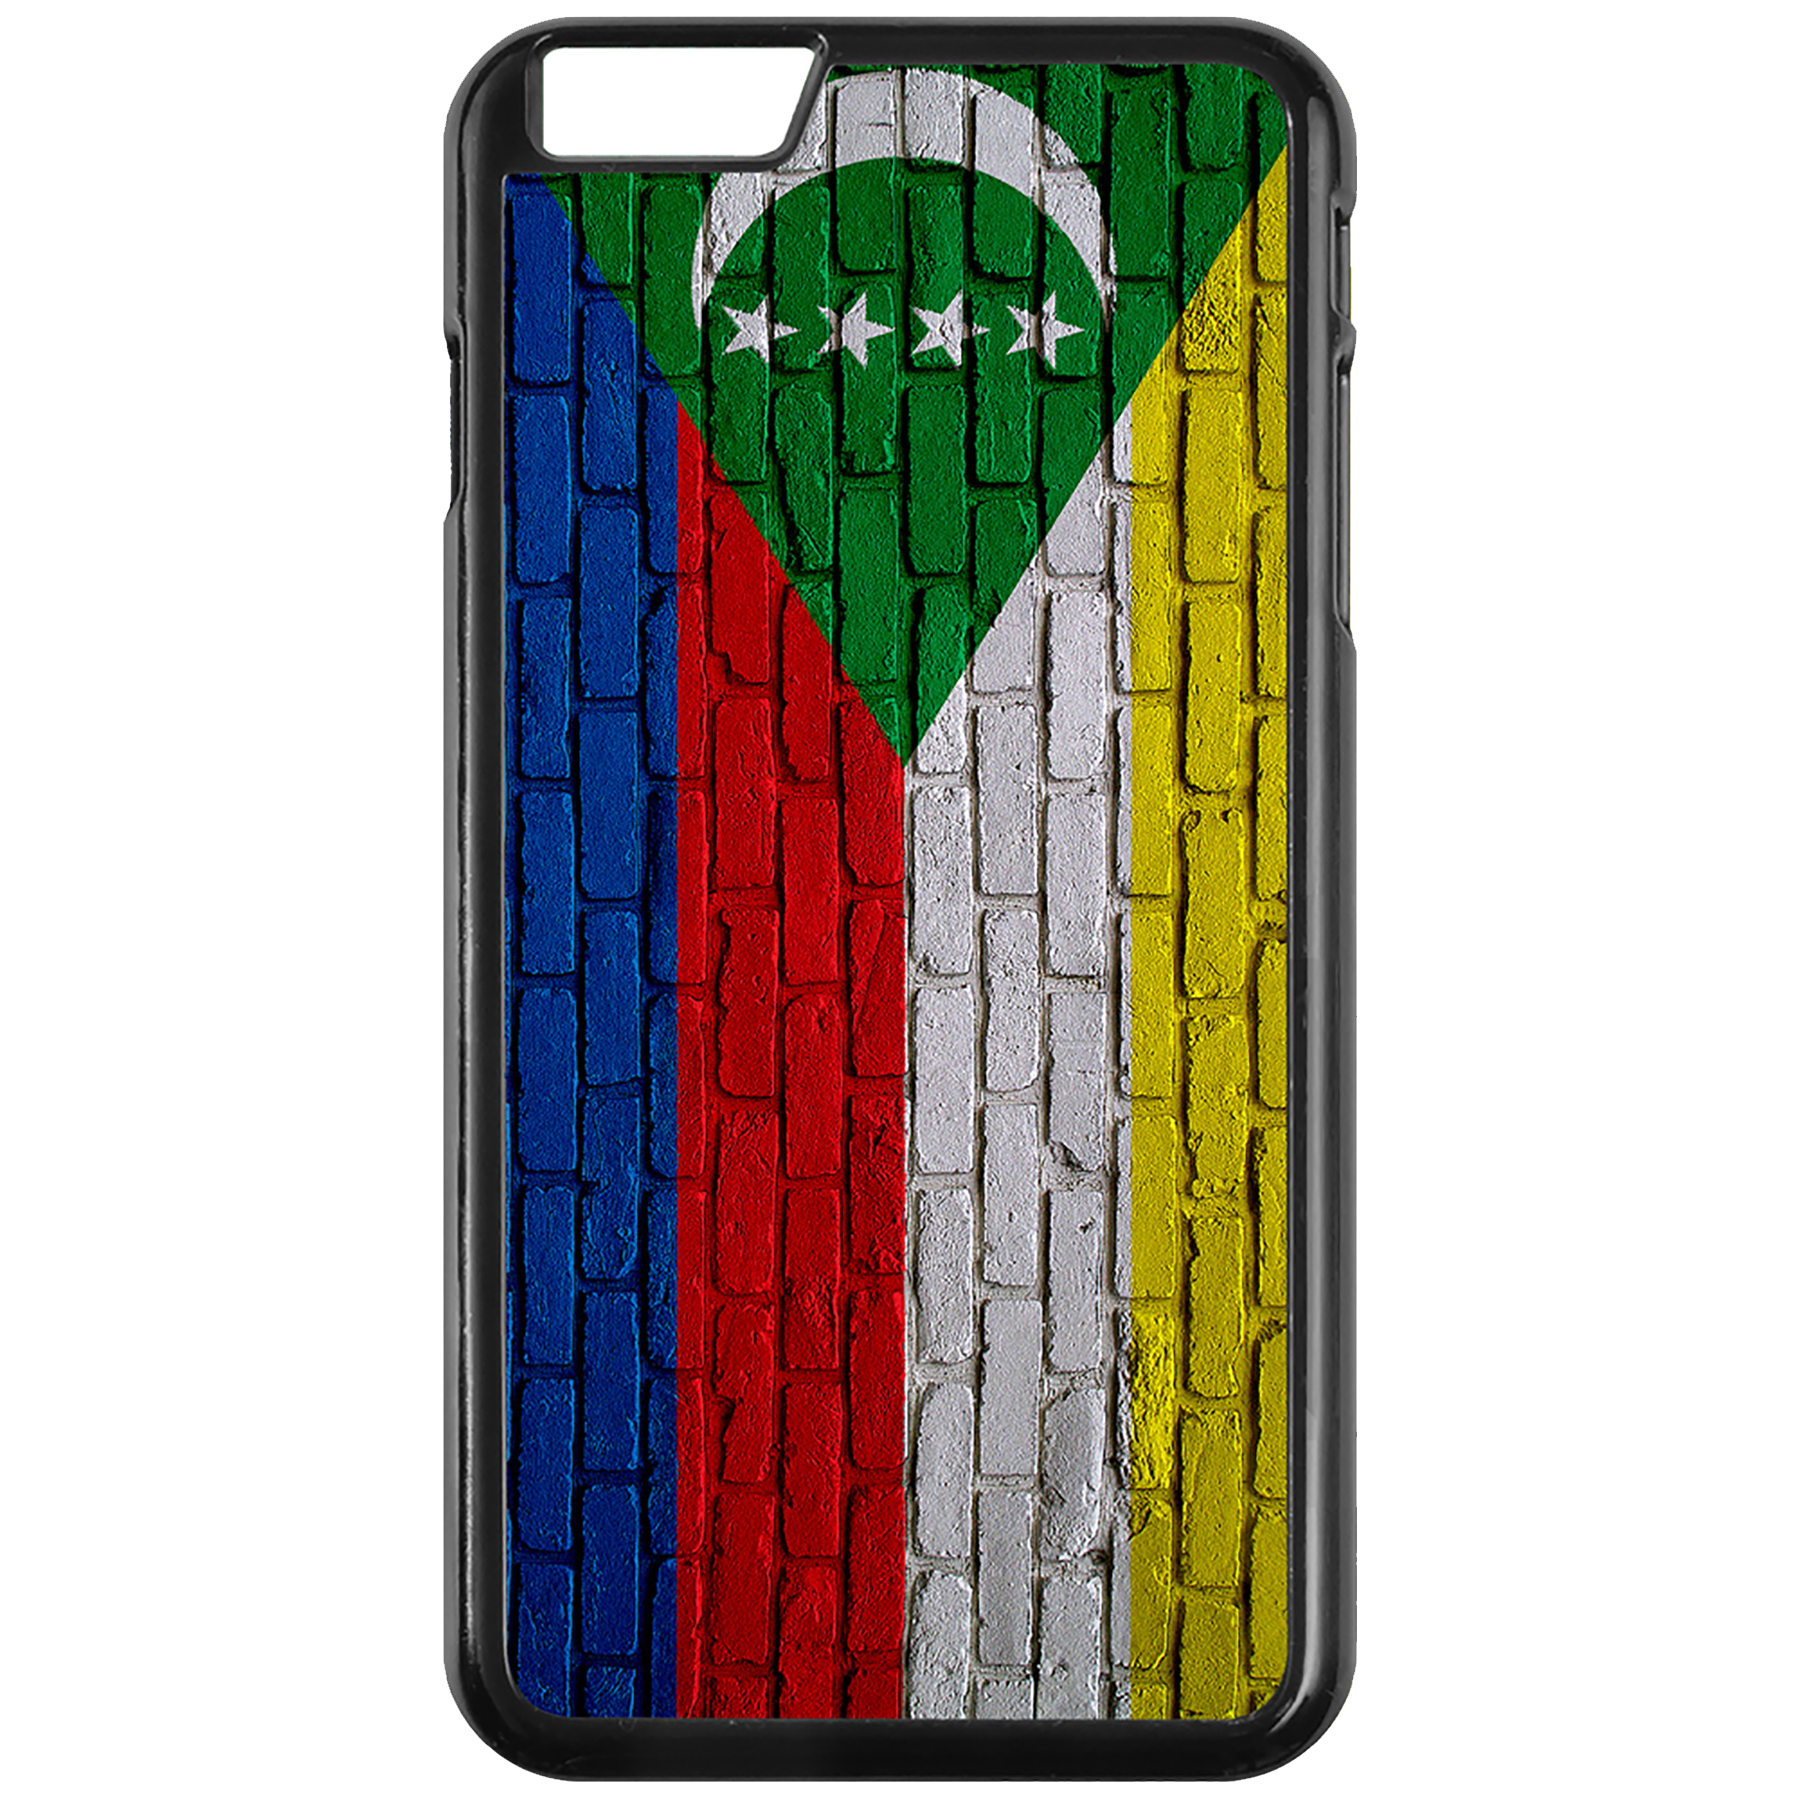 Apple-iPhone-Case-with-Flag-of-Comoros-Comorian-Many-Design-Options thumbnail 52